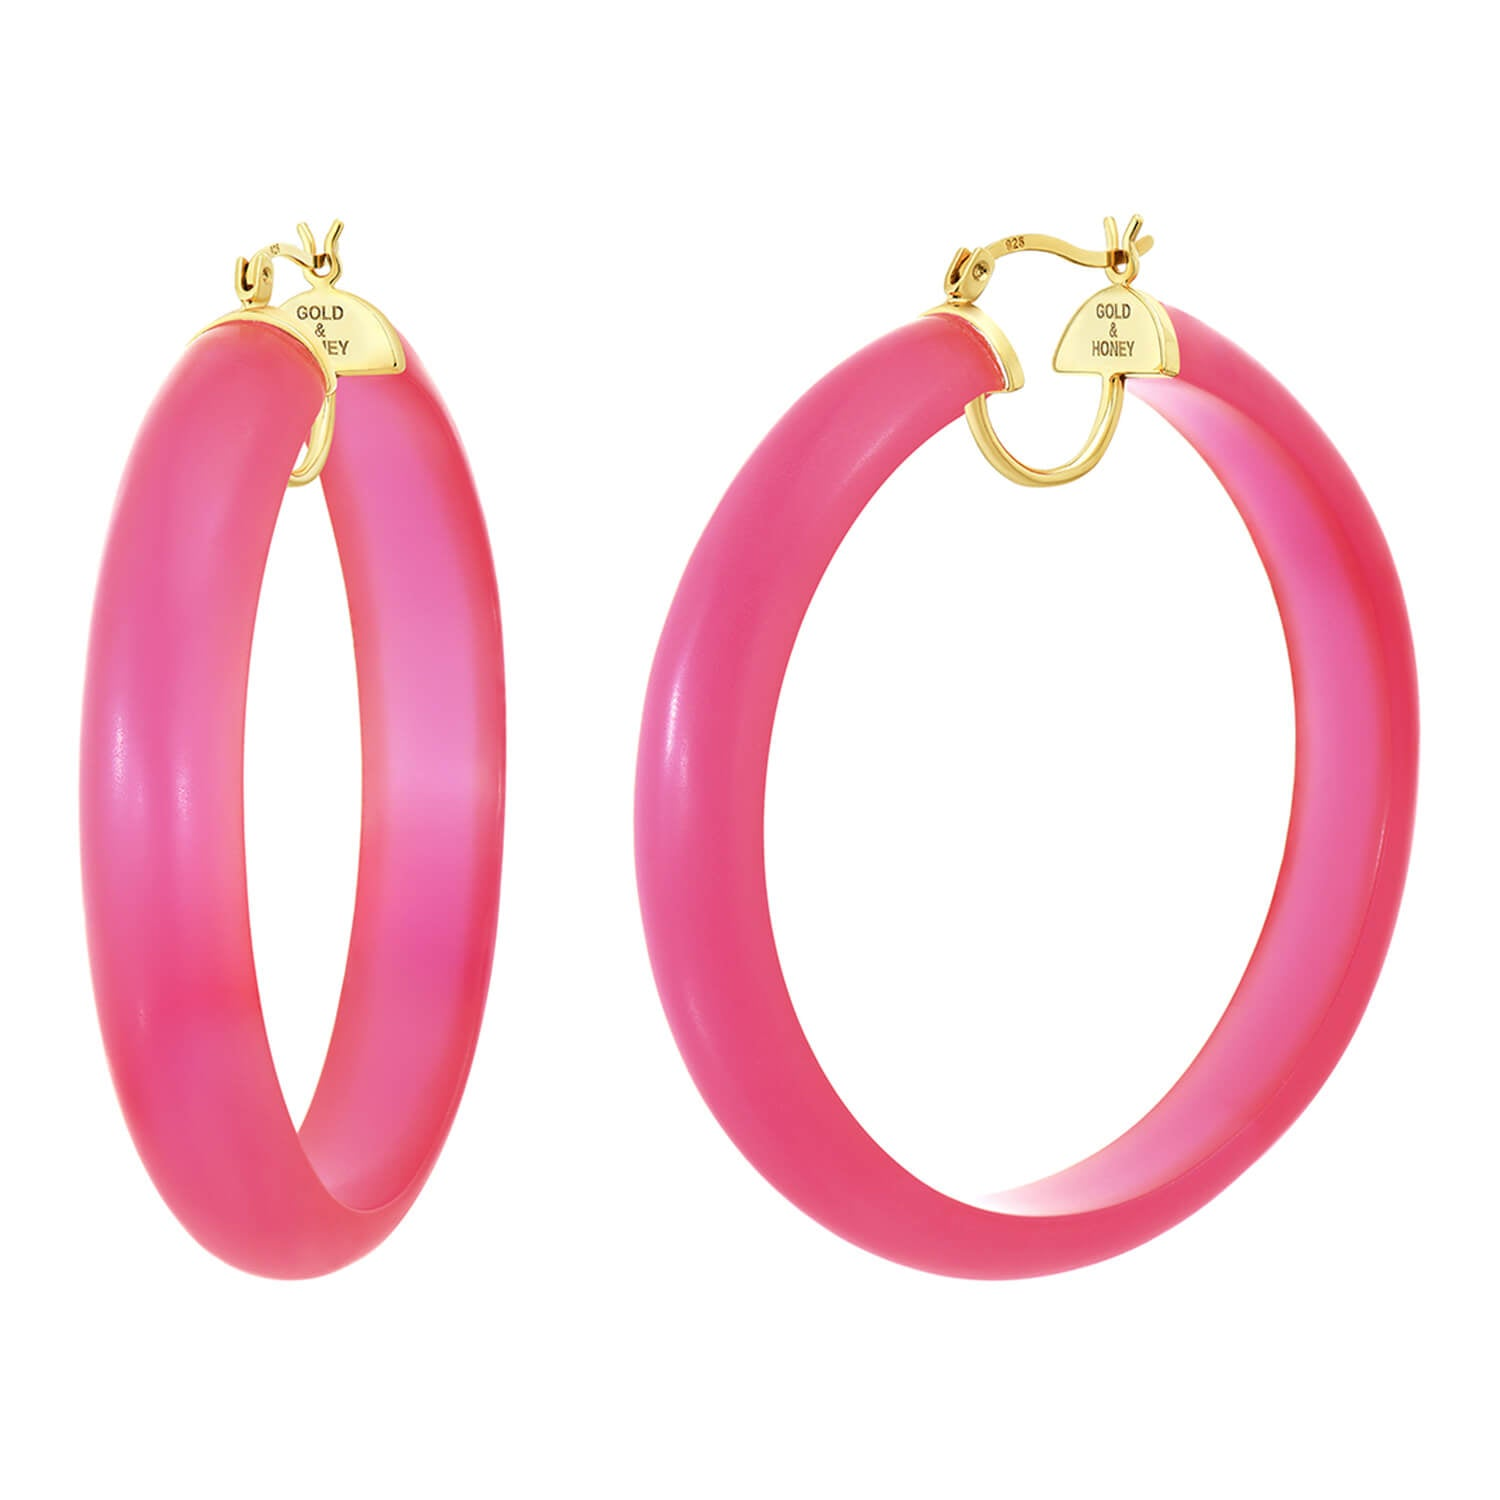 Frosted Lucite Hoops in Hot Pink